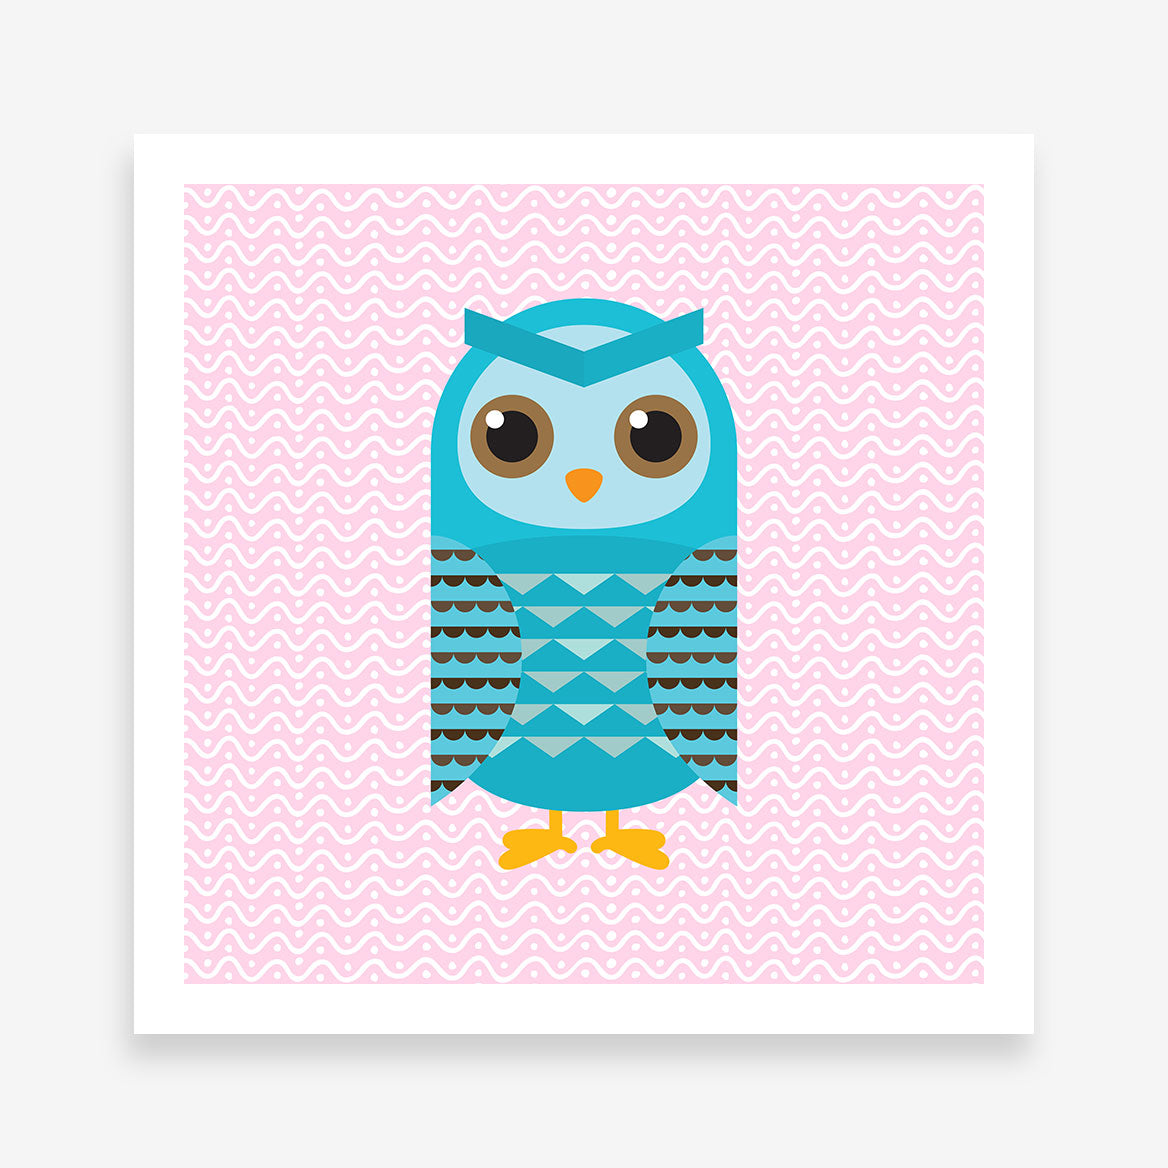 Square poster print with a blue owl on pink patterned background.